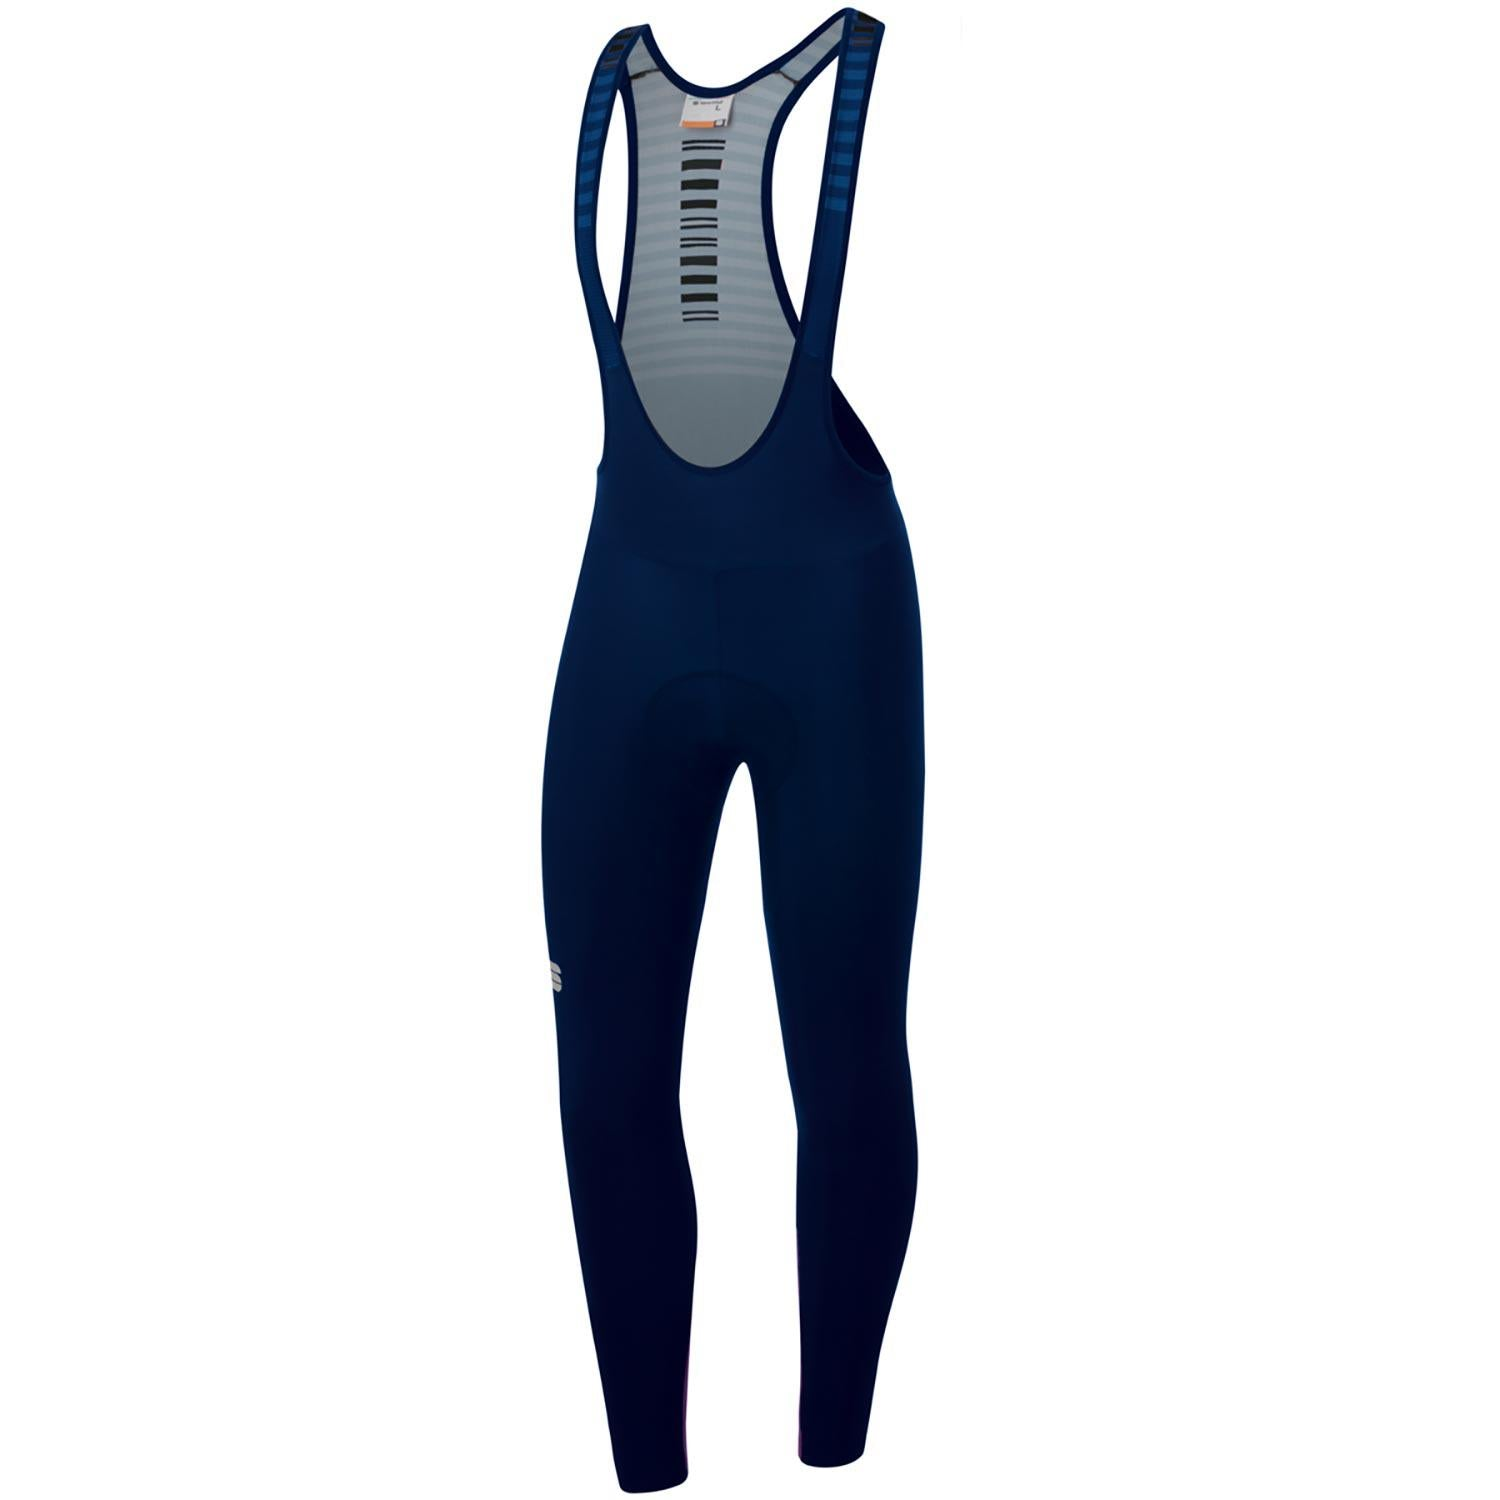 Sportful-Sportful Classic Race Bibtights-Blue/Black-S-SF205170132-saddleback-elite-performance-cycling